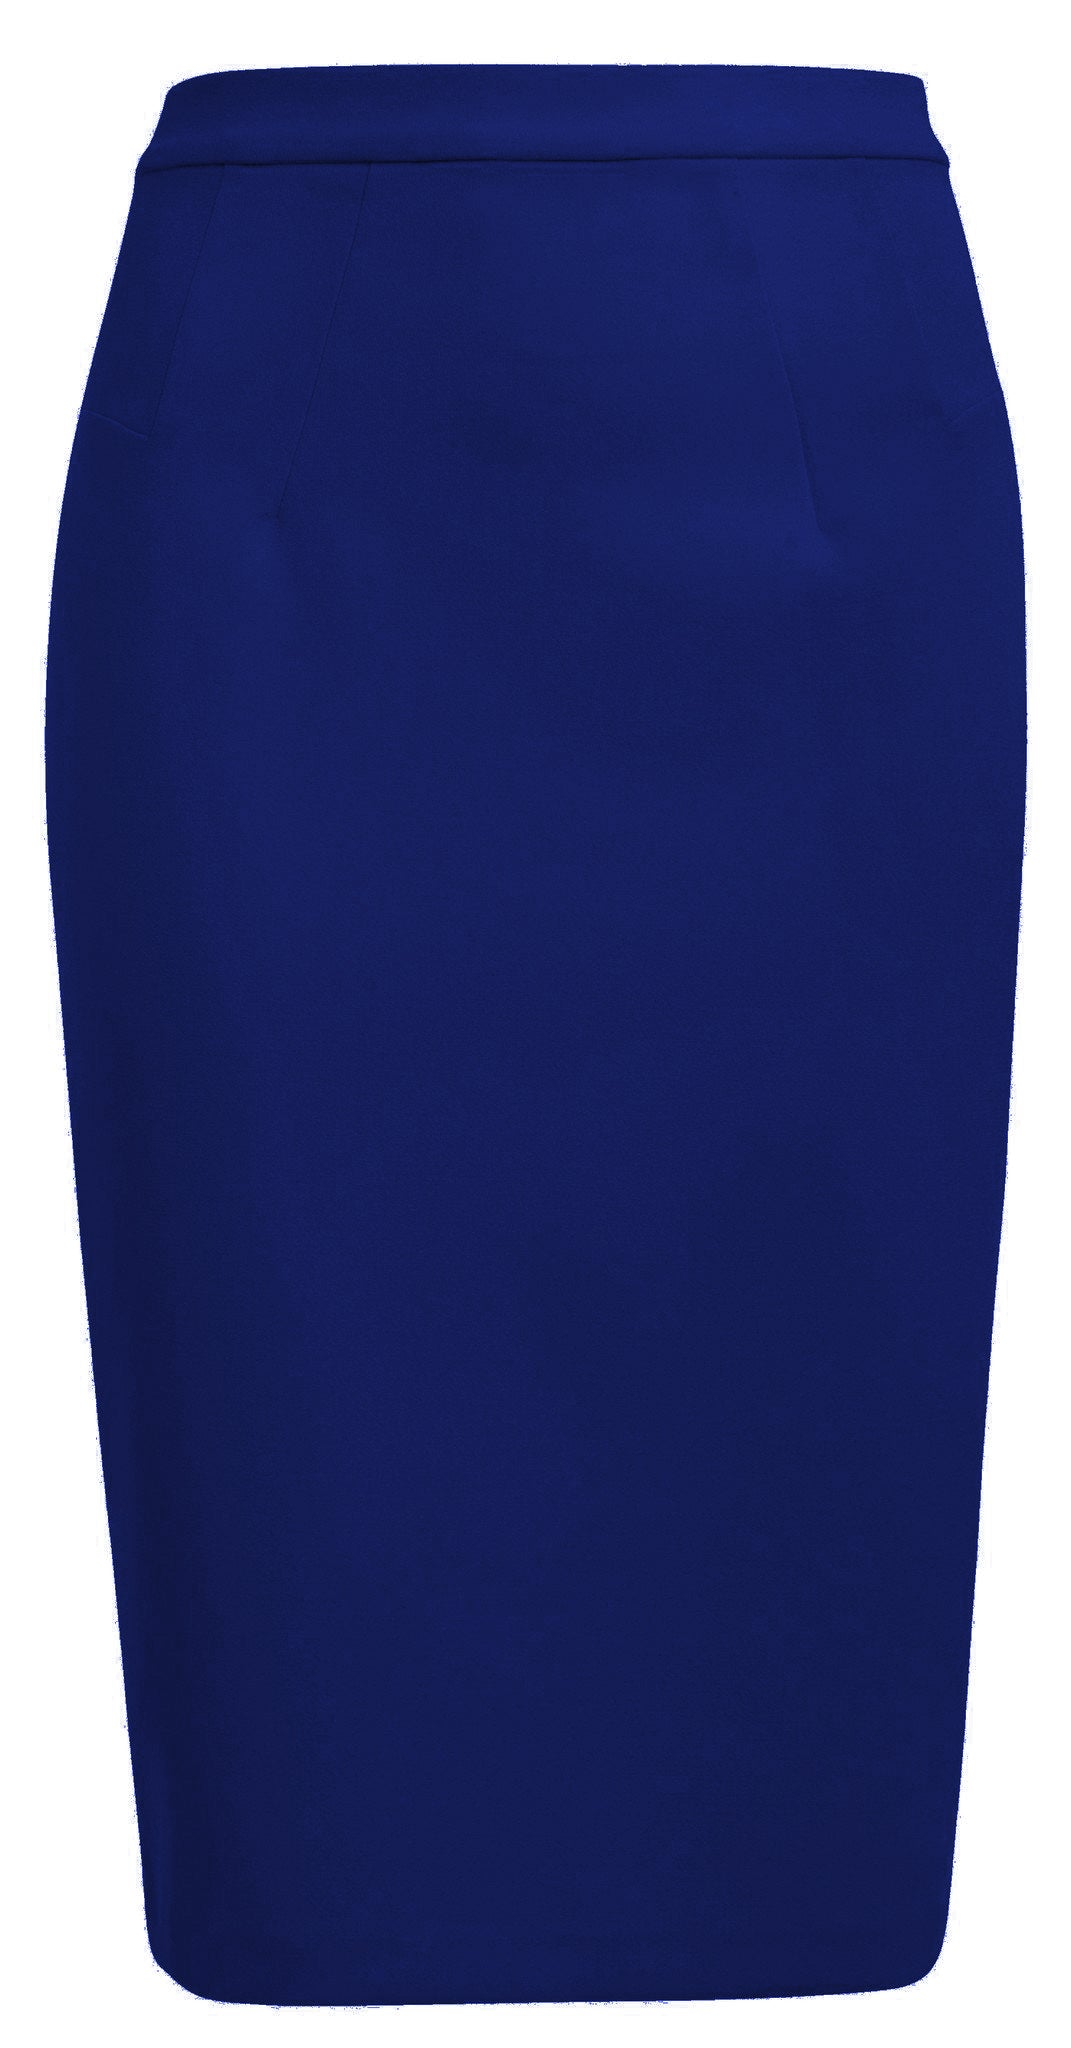 BELFORT SKIRT ROYAL BLUE